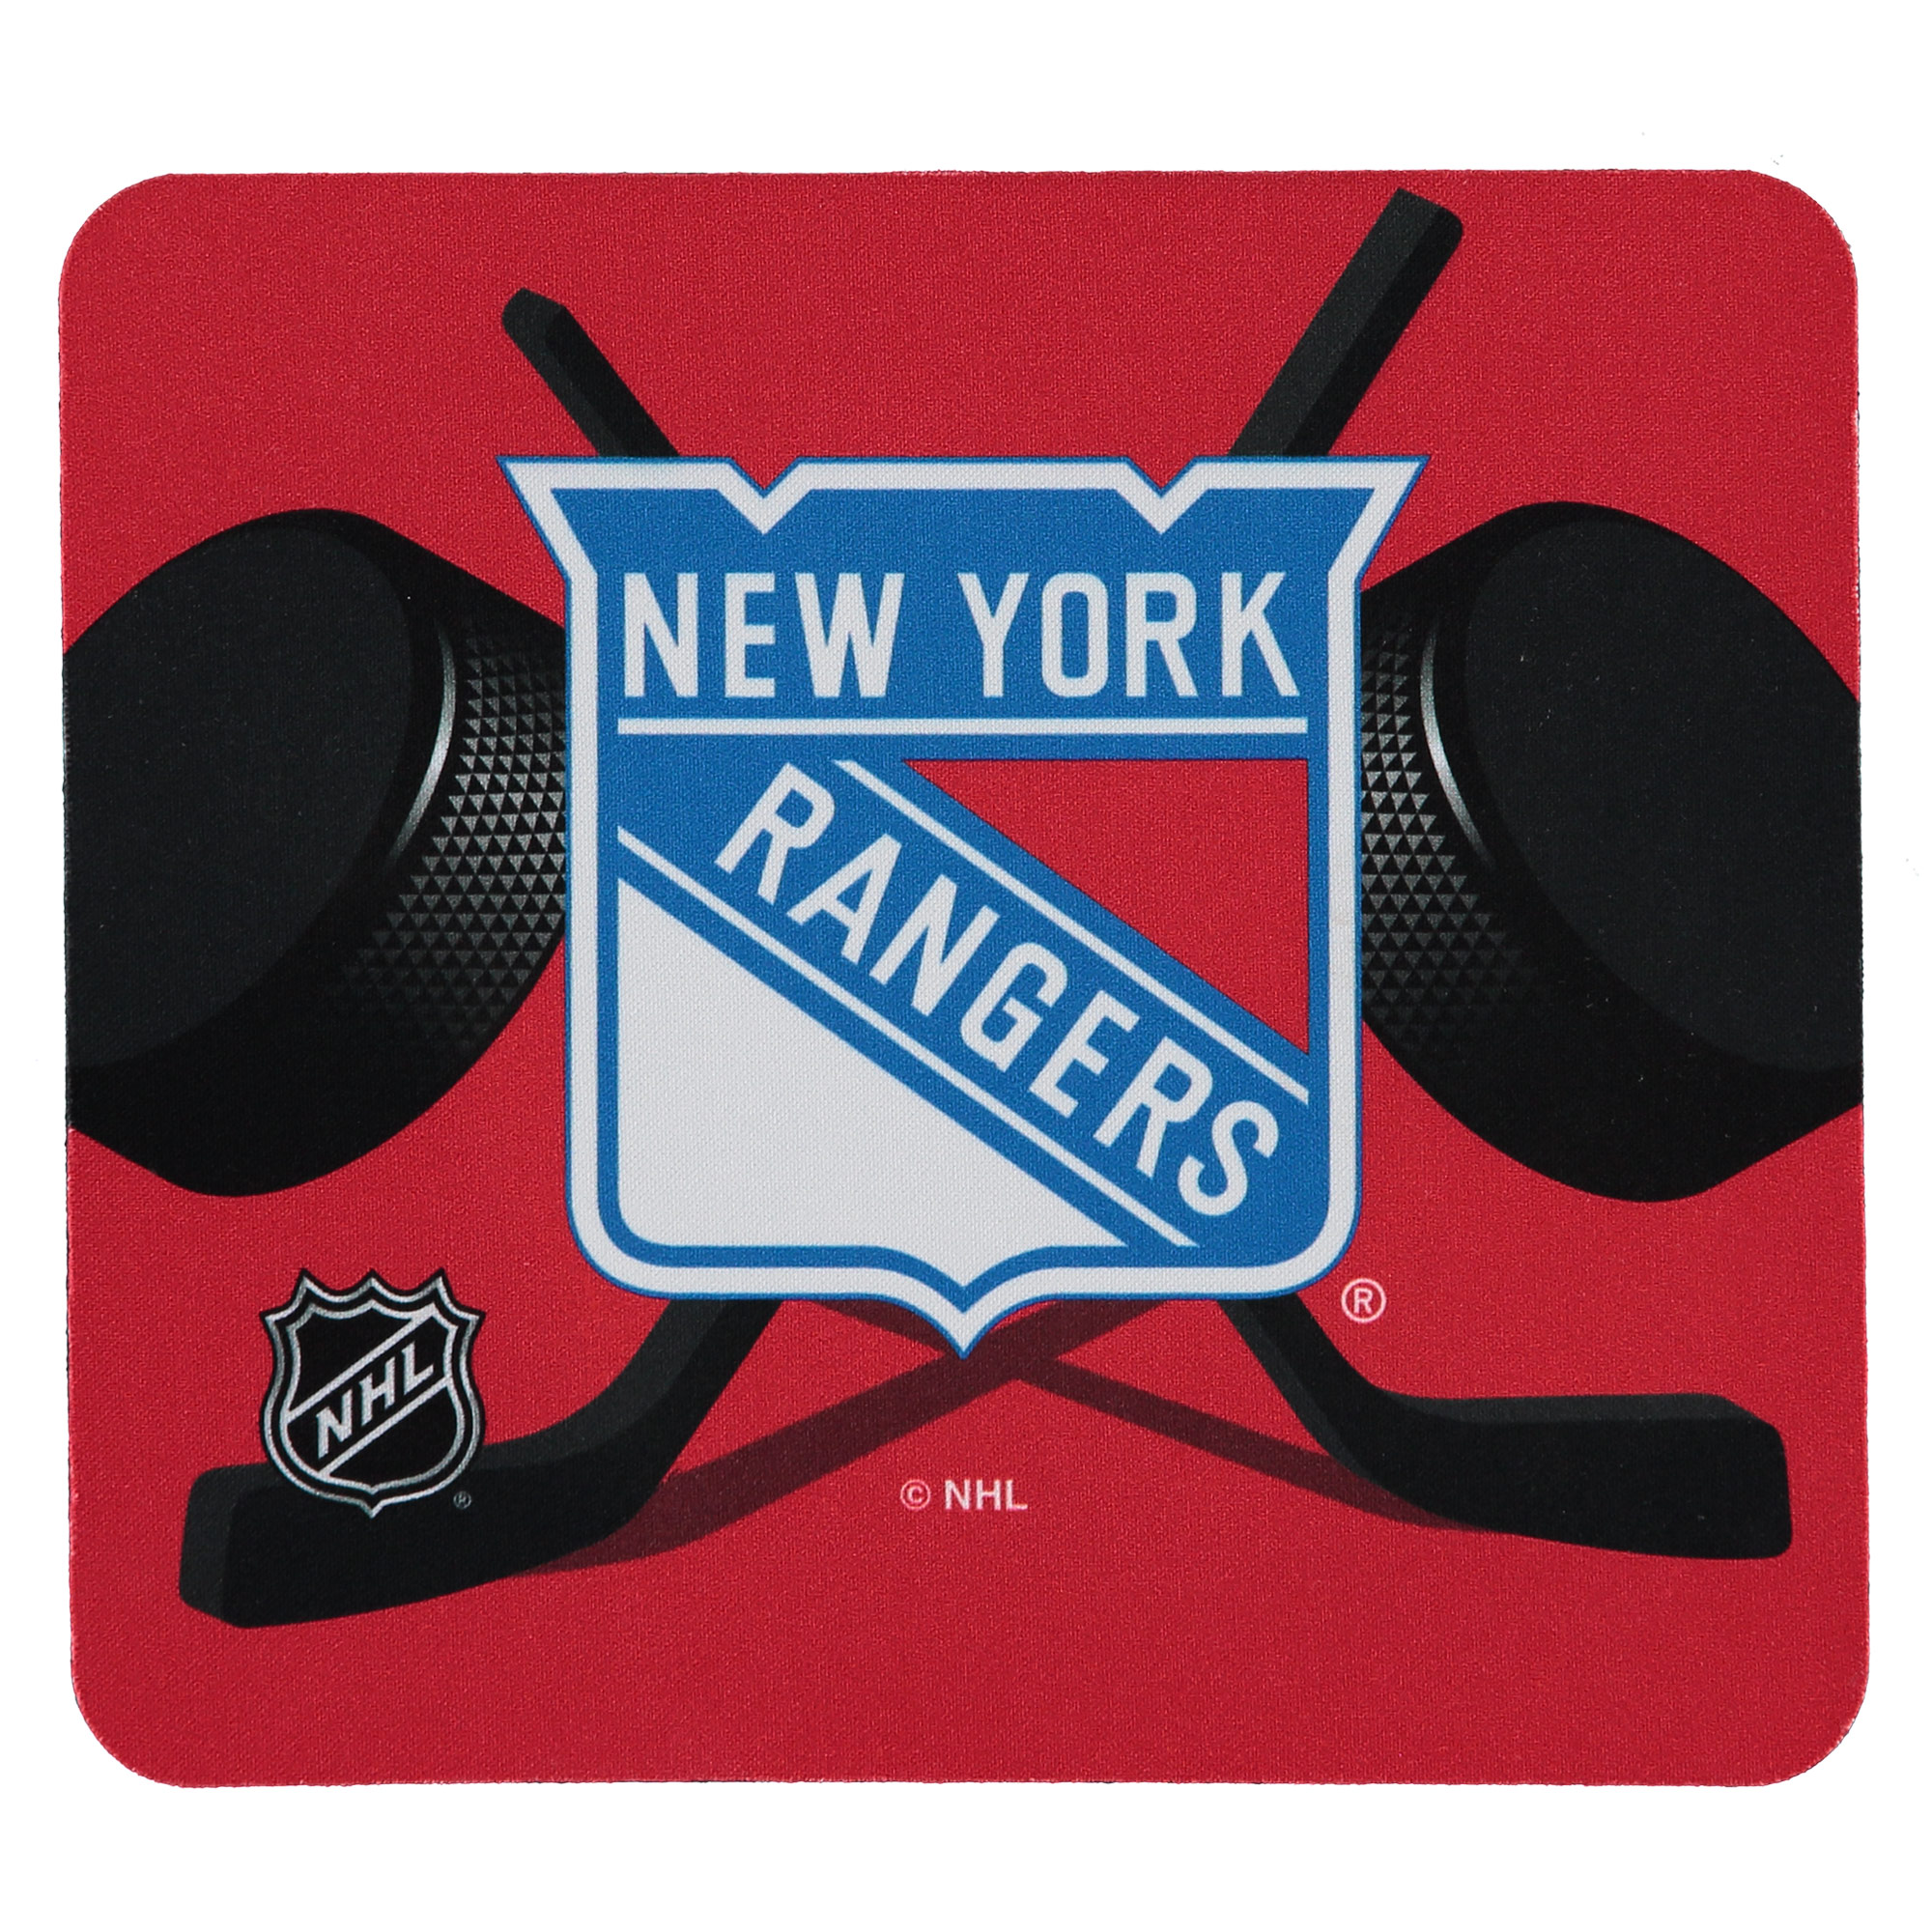 New York Rangers 3D Mouse Pad - No Size